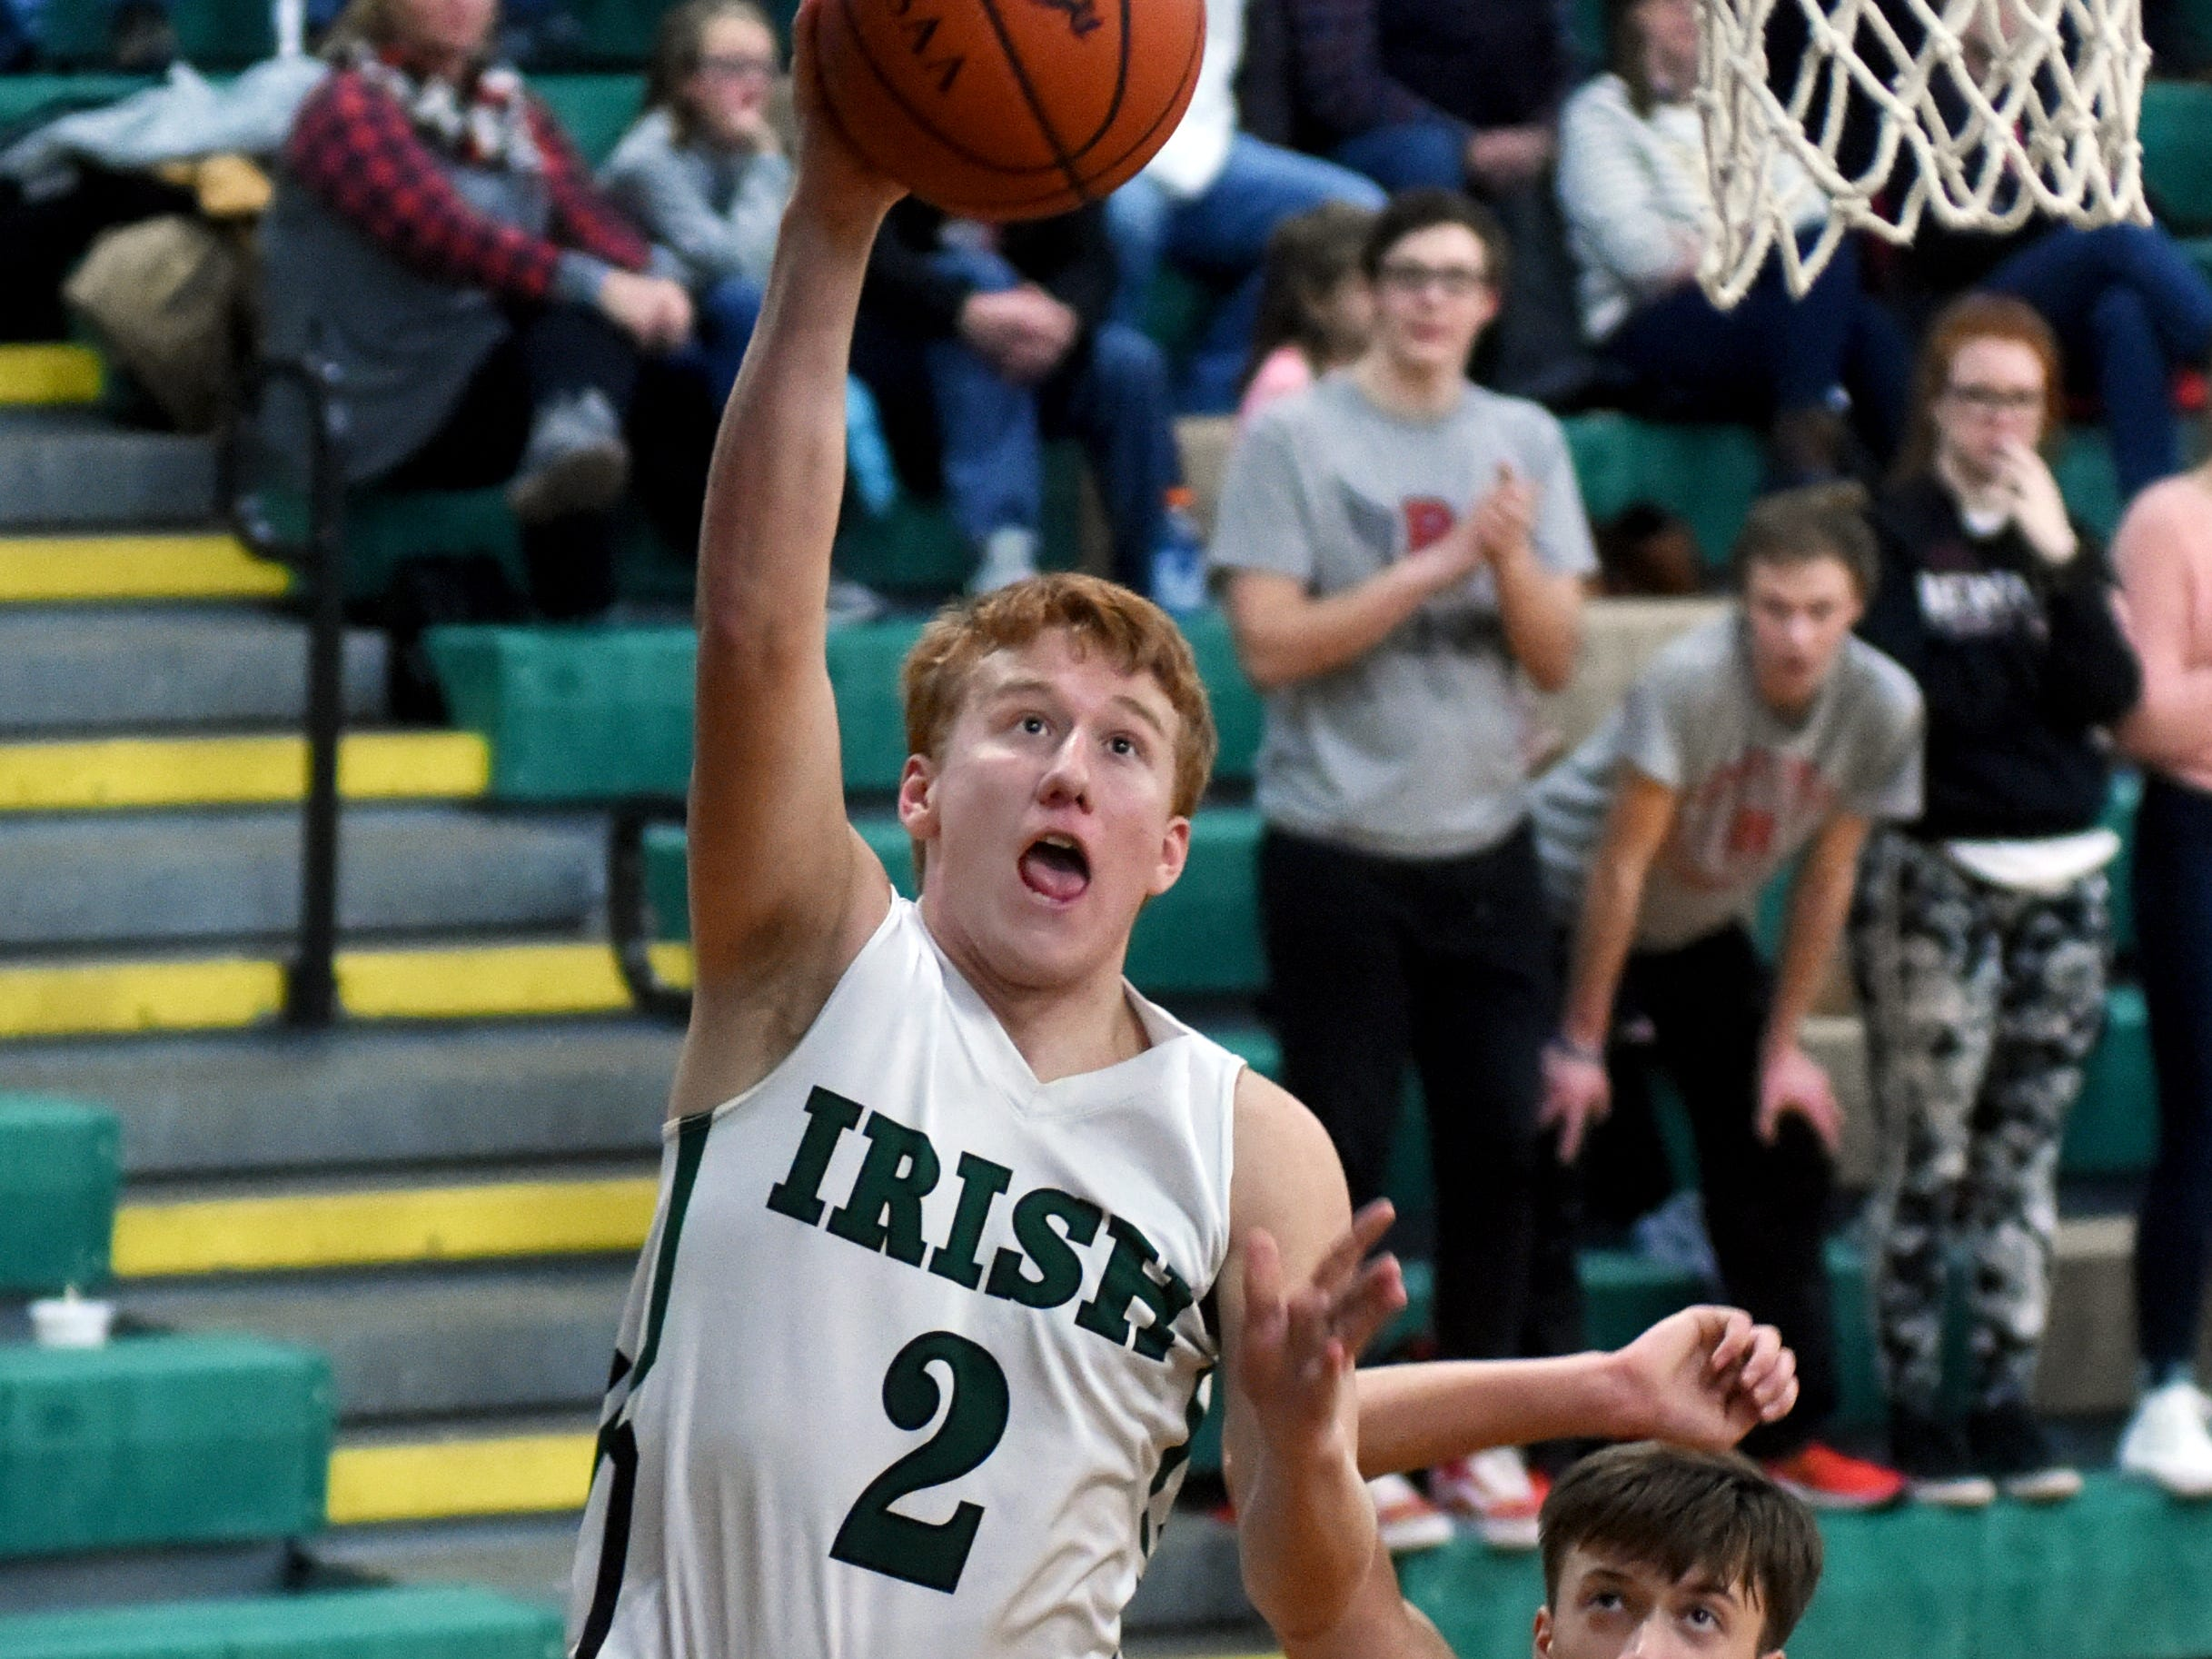 Jayden Boyden goes in for a layup over Josh Merva during the second half of Fisher Catholic's 55-47 loss to visiting Rosecrans on Saturday night in Lancaster.